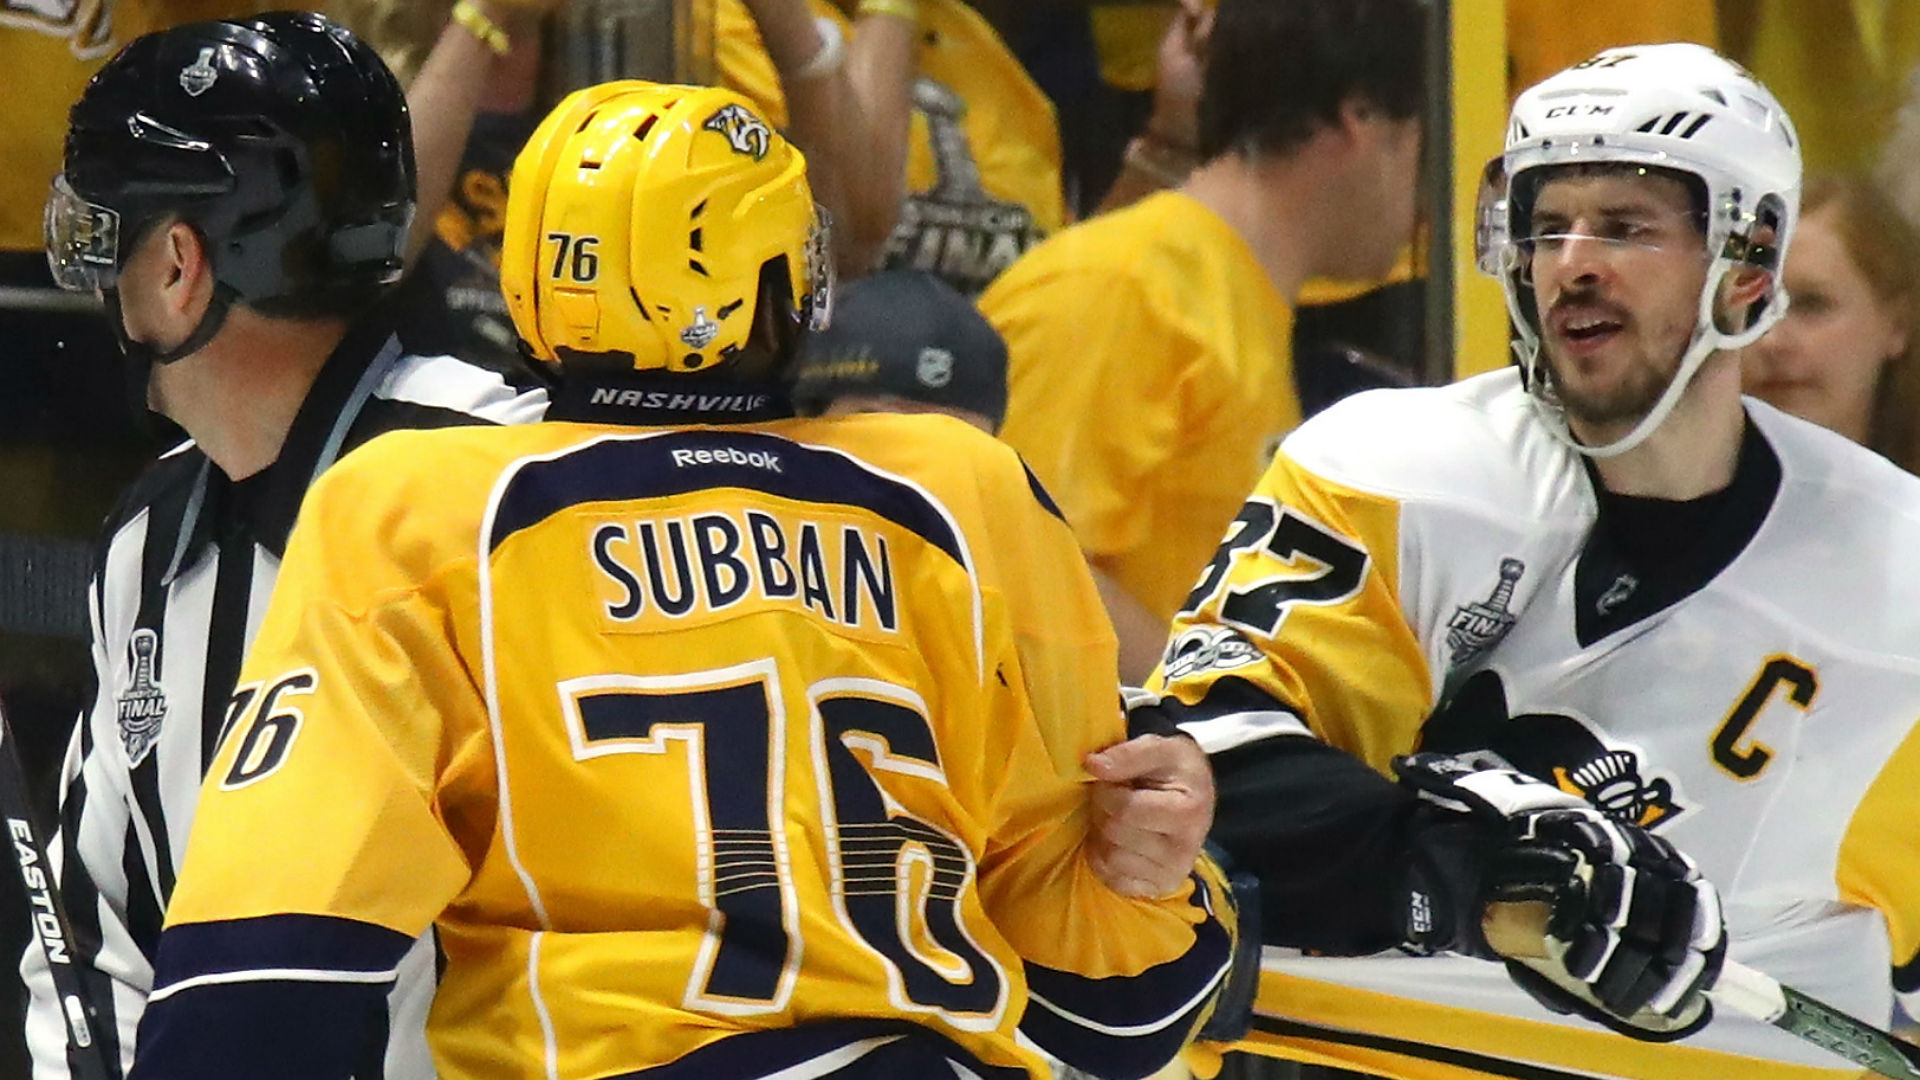 NHL: Crosby has no time for Subban's games in Stanley Cup Final